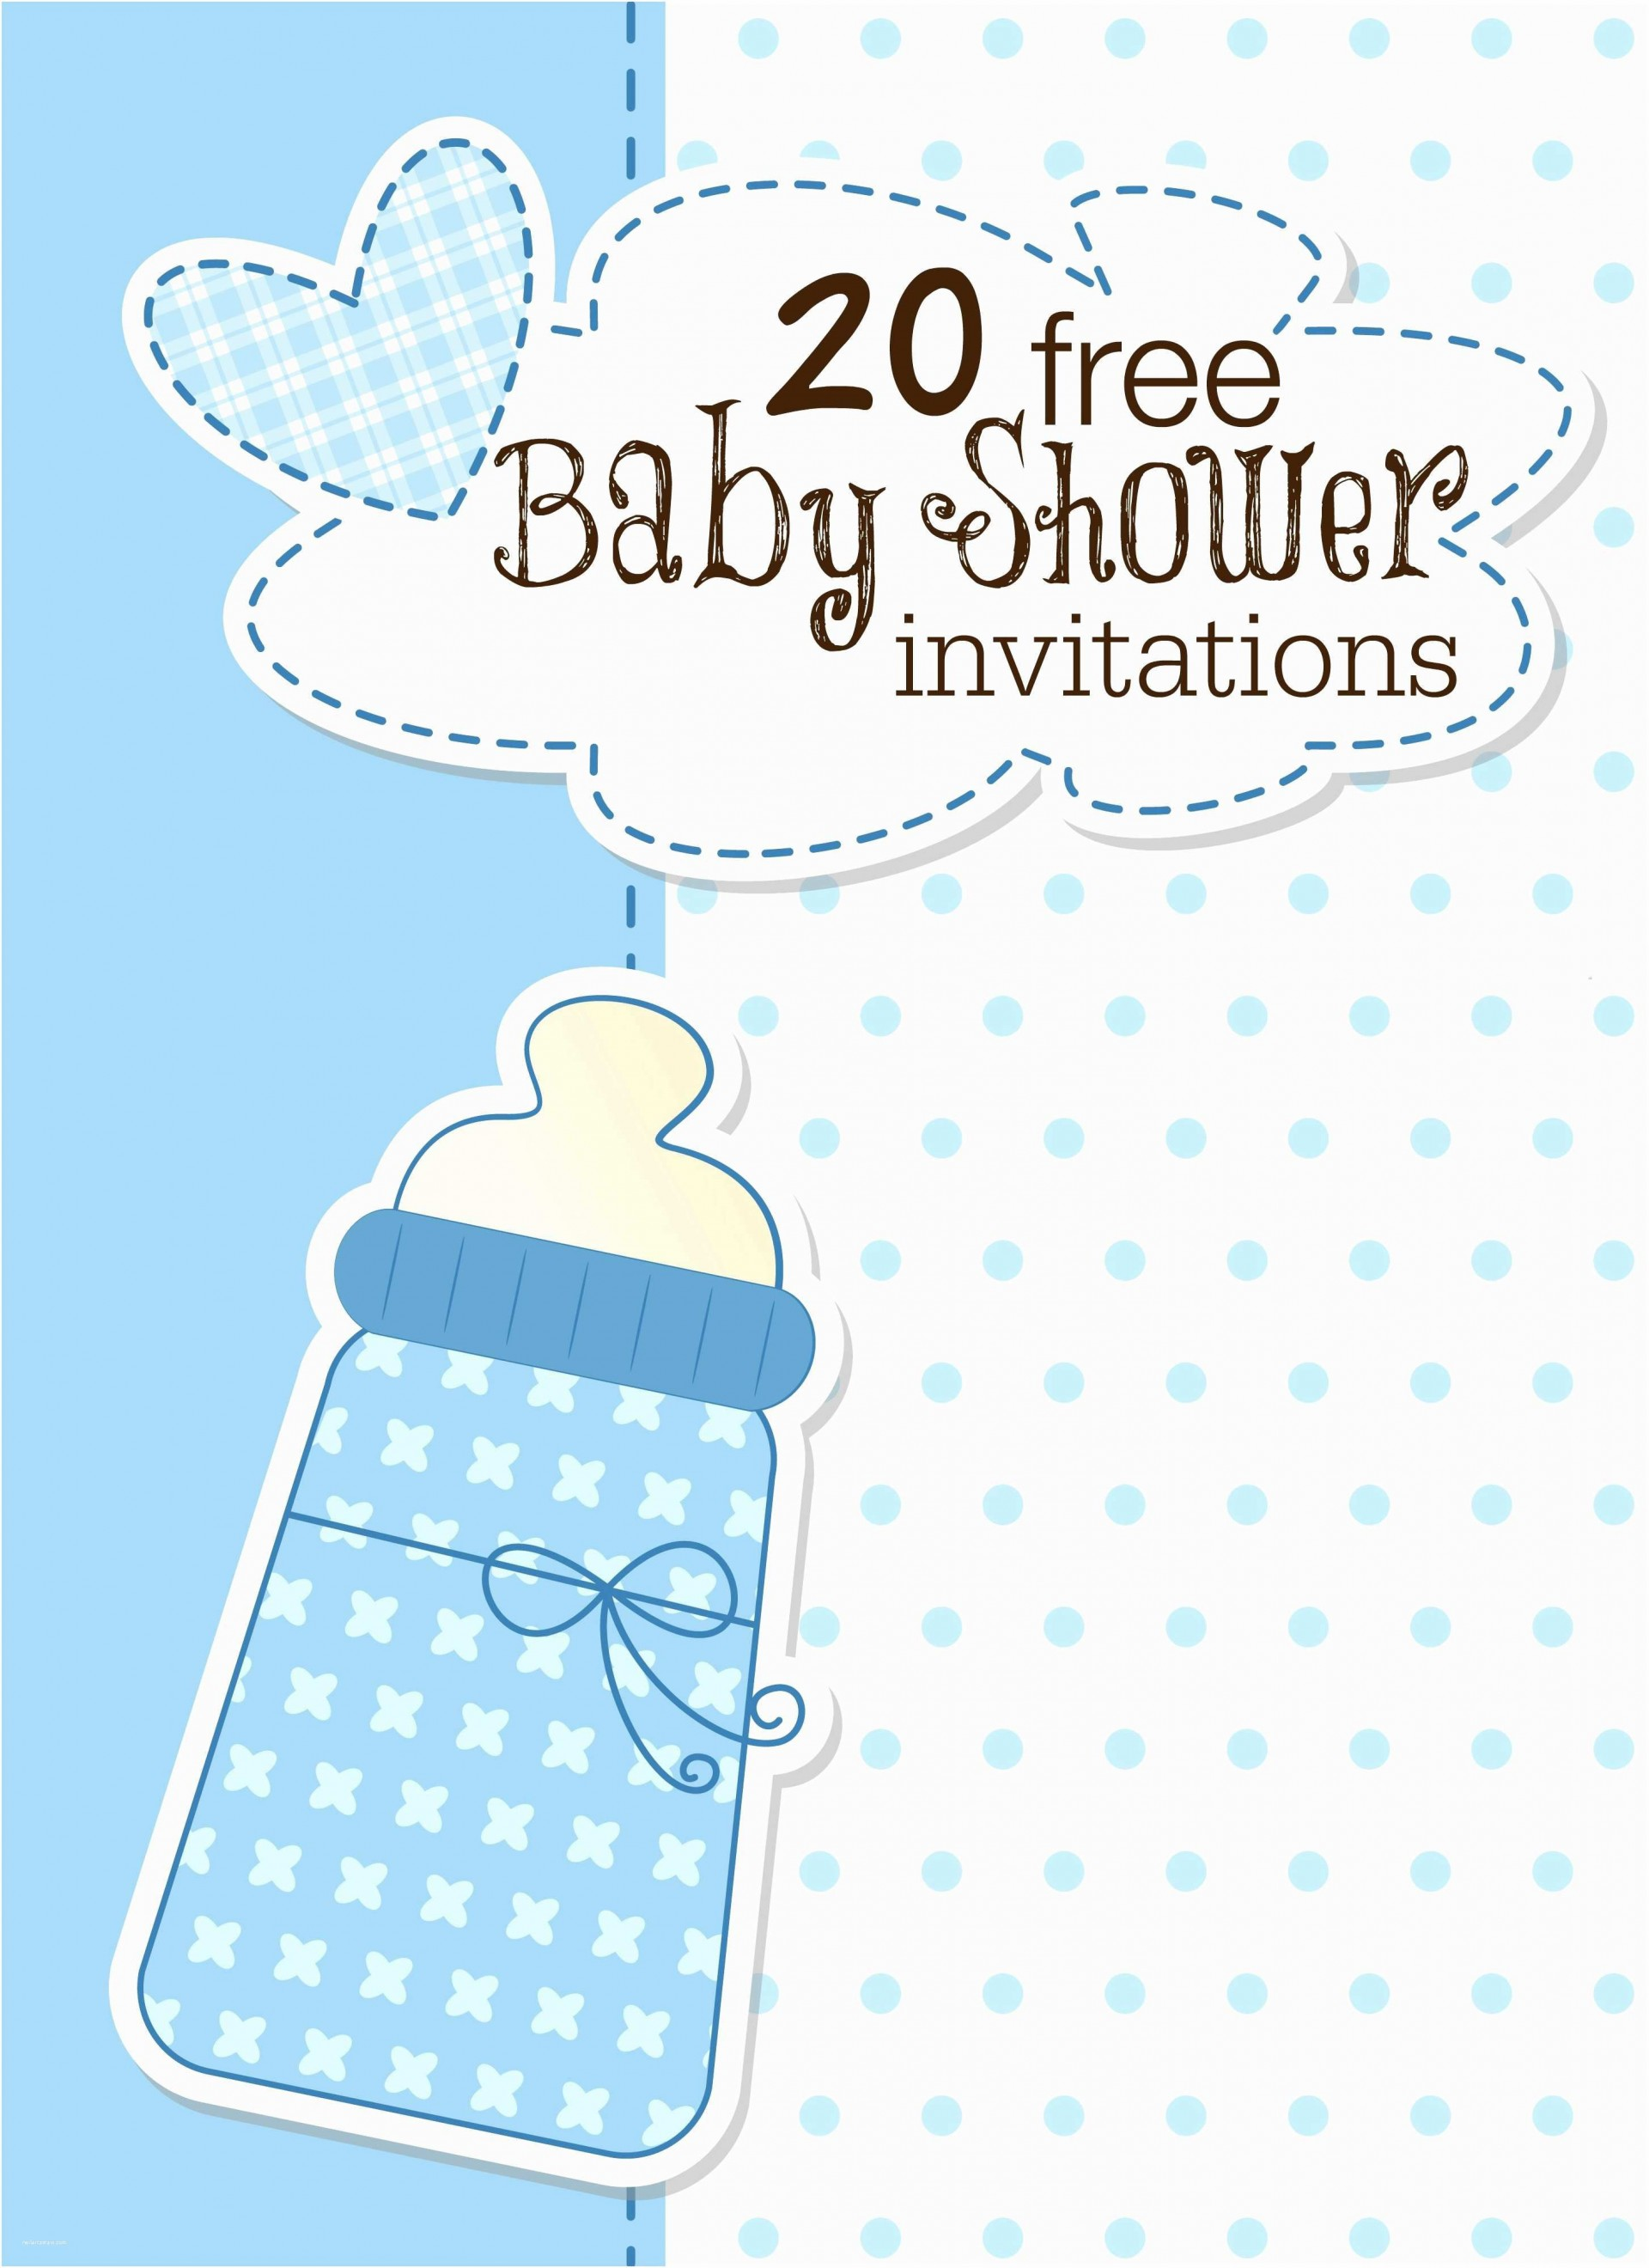 008 Archaicawful Free Baby Shower Invitation Template Idea  Printable Editable Microsoft Word To Print1920